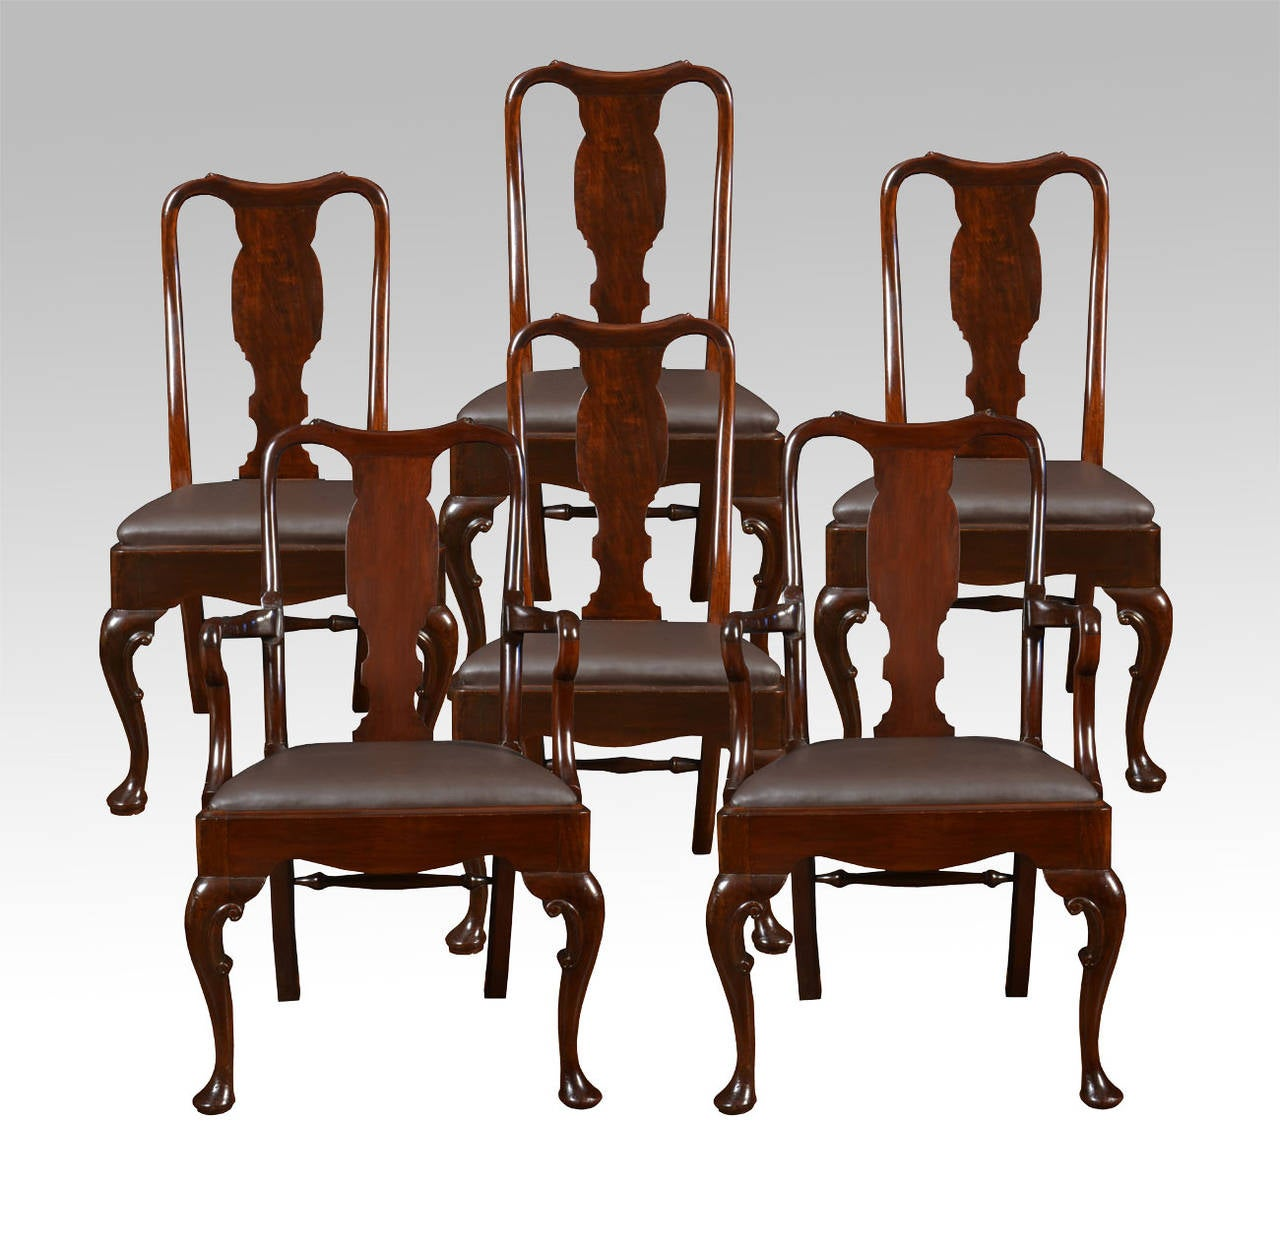 high back dining chairs seat chair set of six early 20th century queen anne style